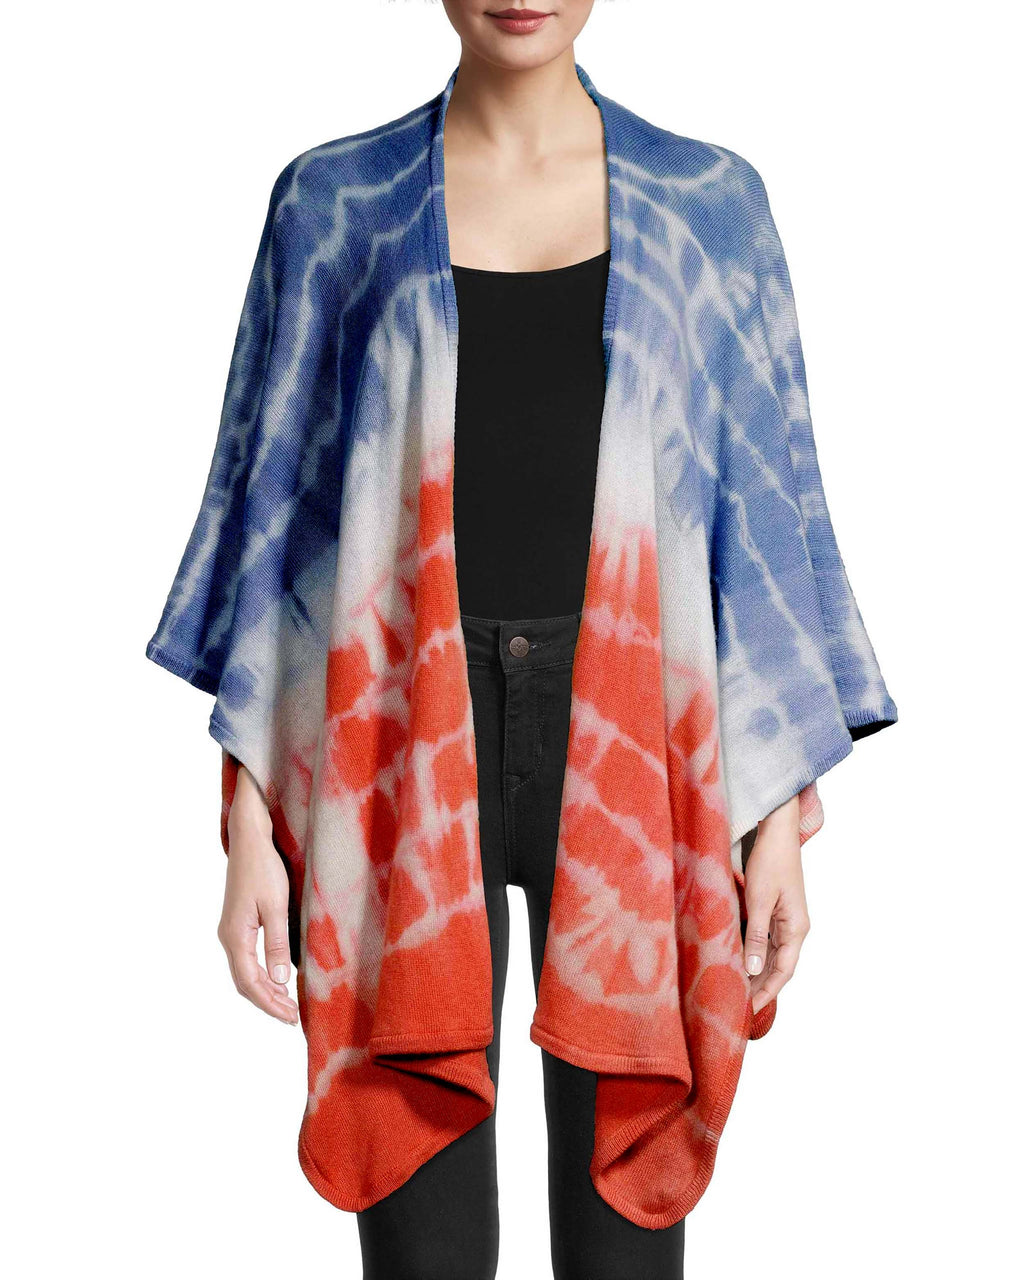 CA18685 - TIE DYE CASHMERE PONCHO - tops - knitwear - The perfect accessory for a chilly vacation night. Crafted from 100% cashmere, this super soft wrap is perfect for layering over any of the other pieces from our resort 2020 collection. Add 1 line break Stylist Tip: Pair with an all white ensemble for a standout look.